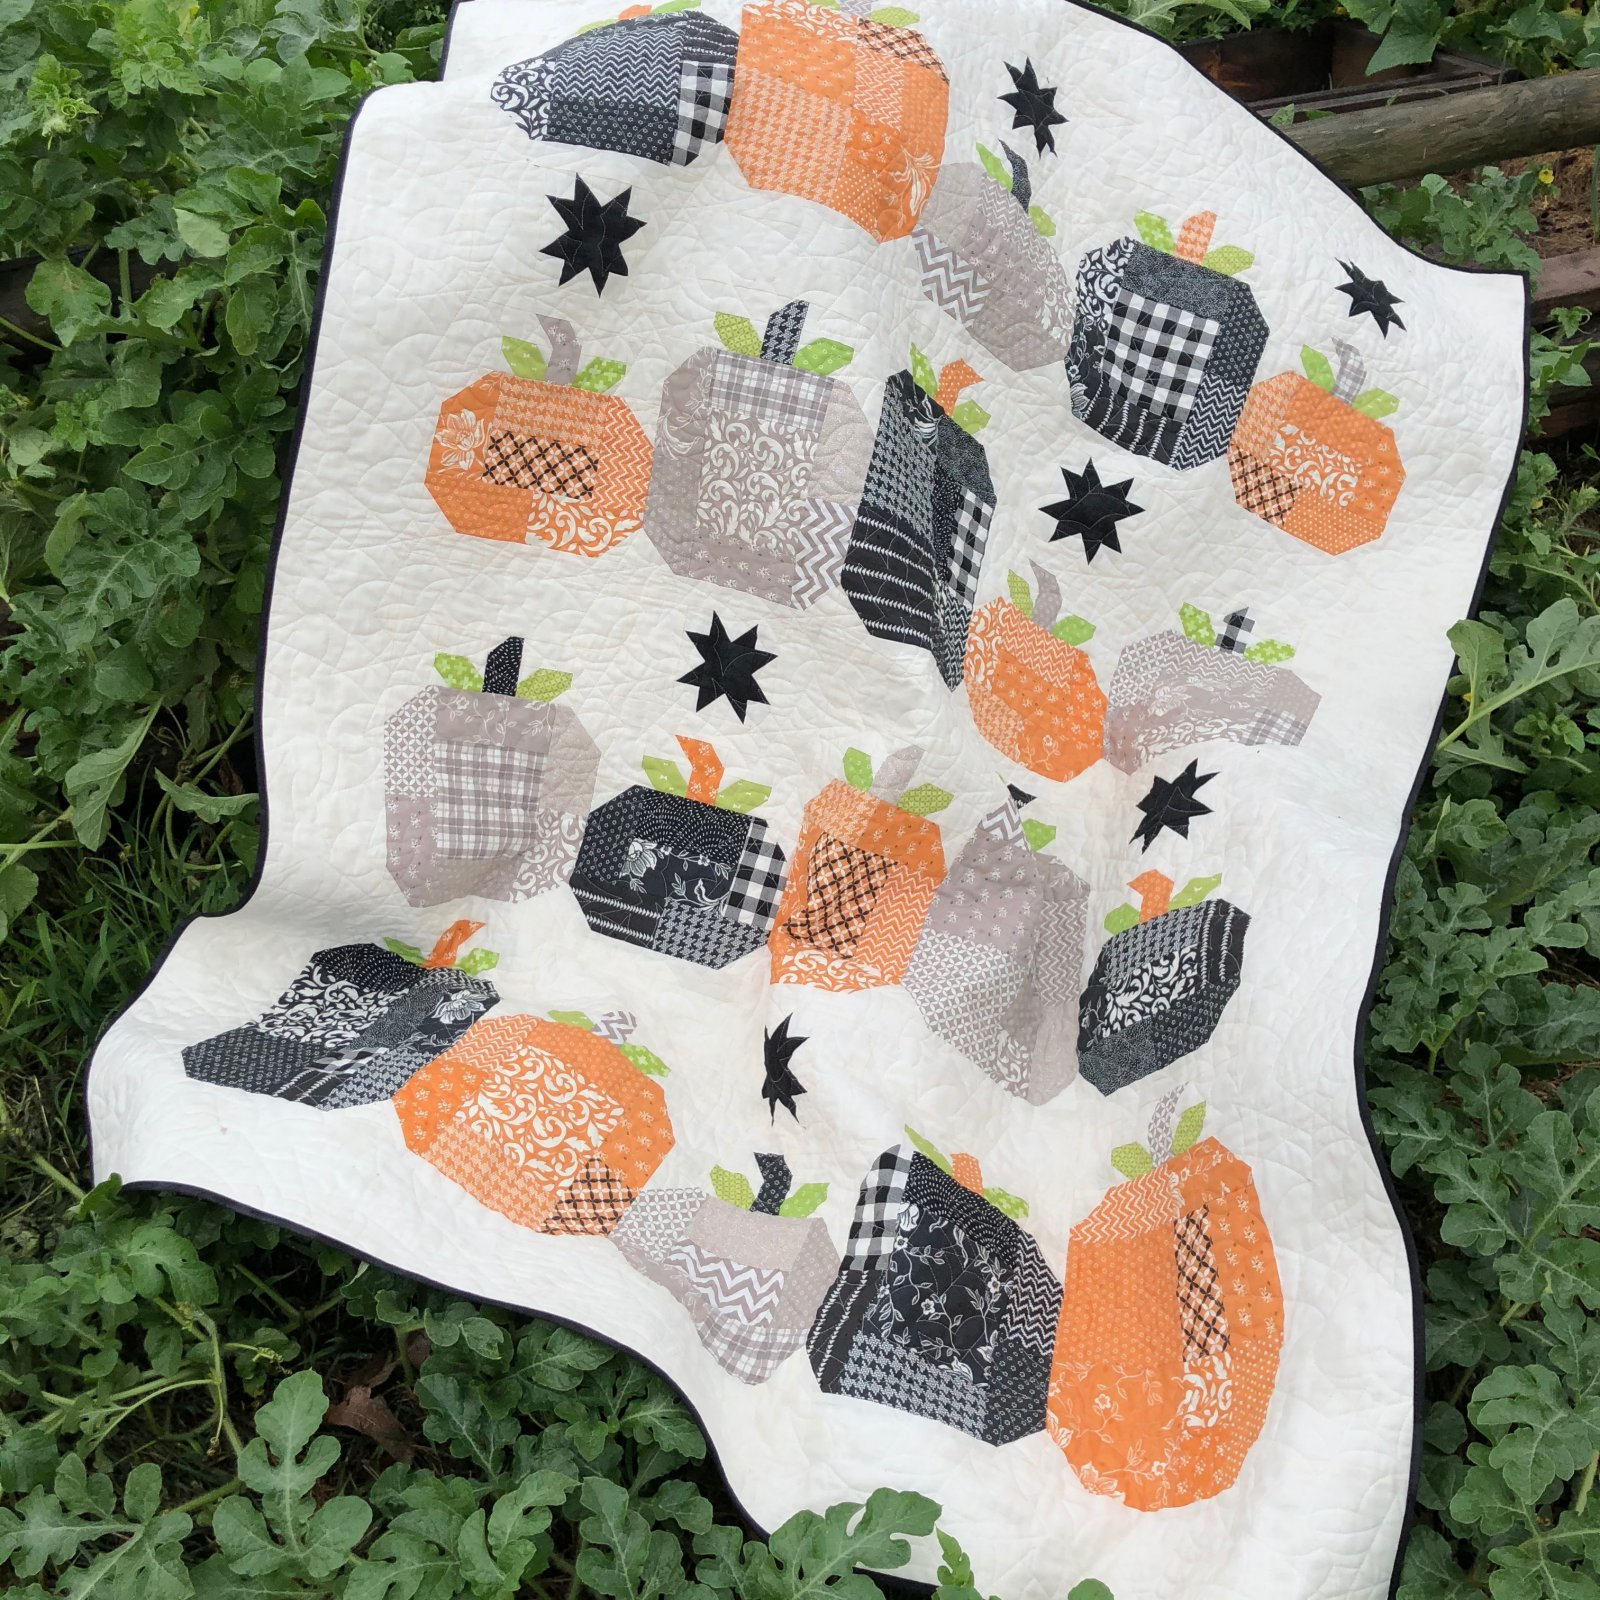 Hocus Pocus Quilt Kit from All Hallow's Eve Fabric